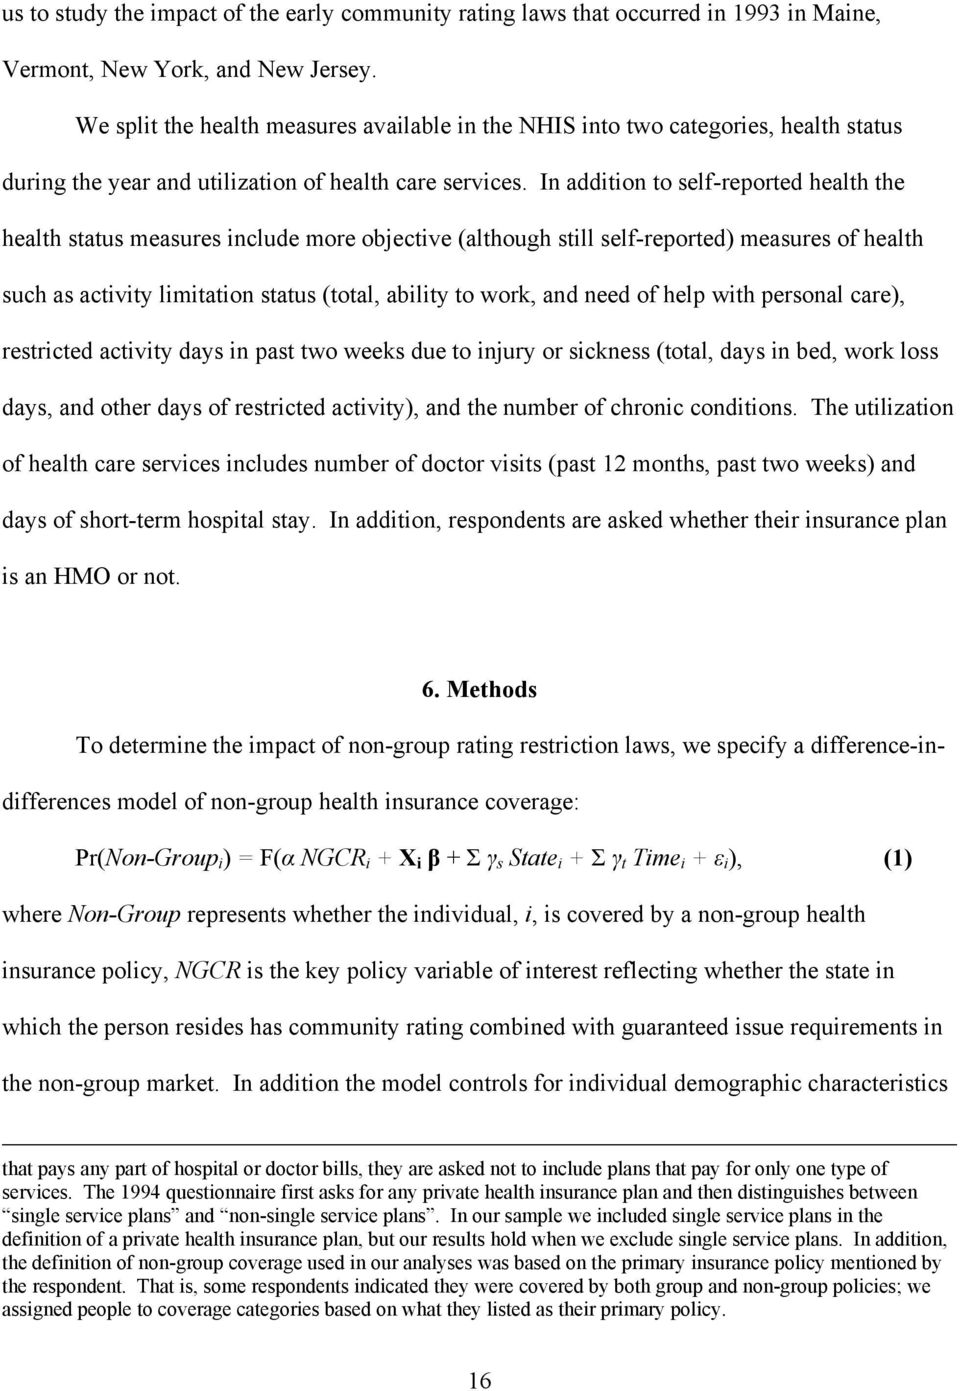 In addition to self-reported health the health status measures include more objective (although still self-reported) measures of health such as activity limitation status (total, ability to work, and